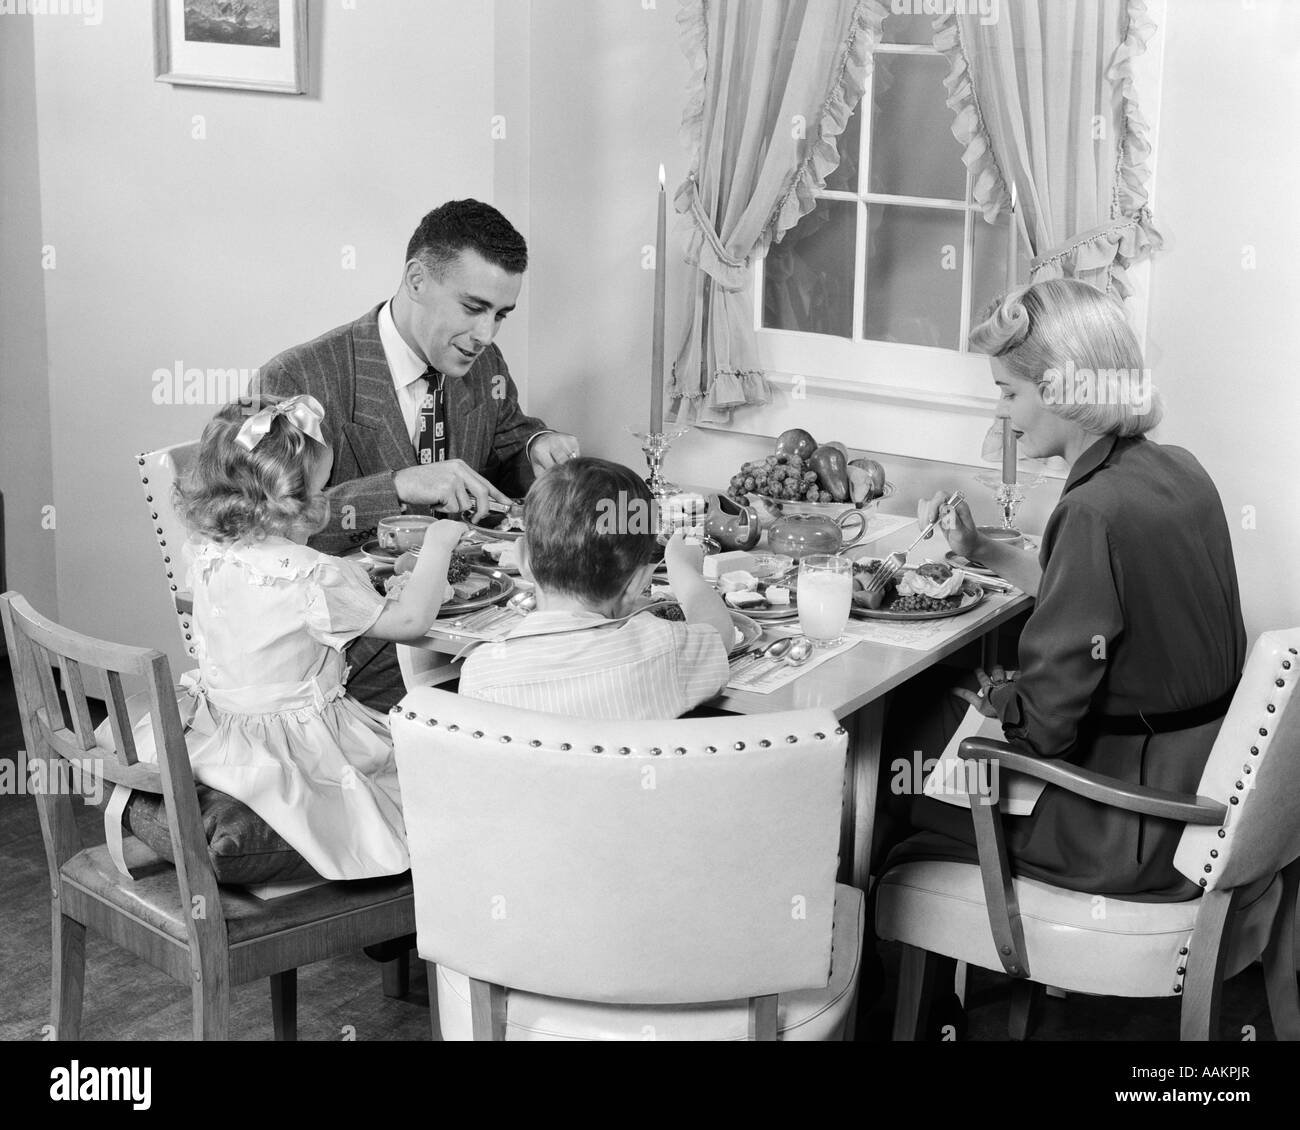 1950s FAMILY OF FOUR EATING DINNER TOGETHER